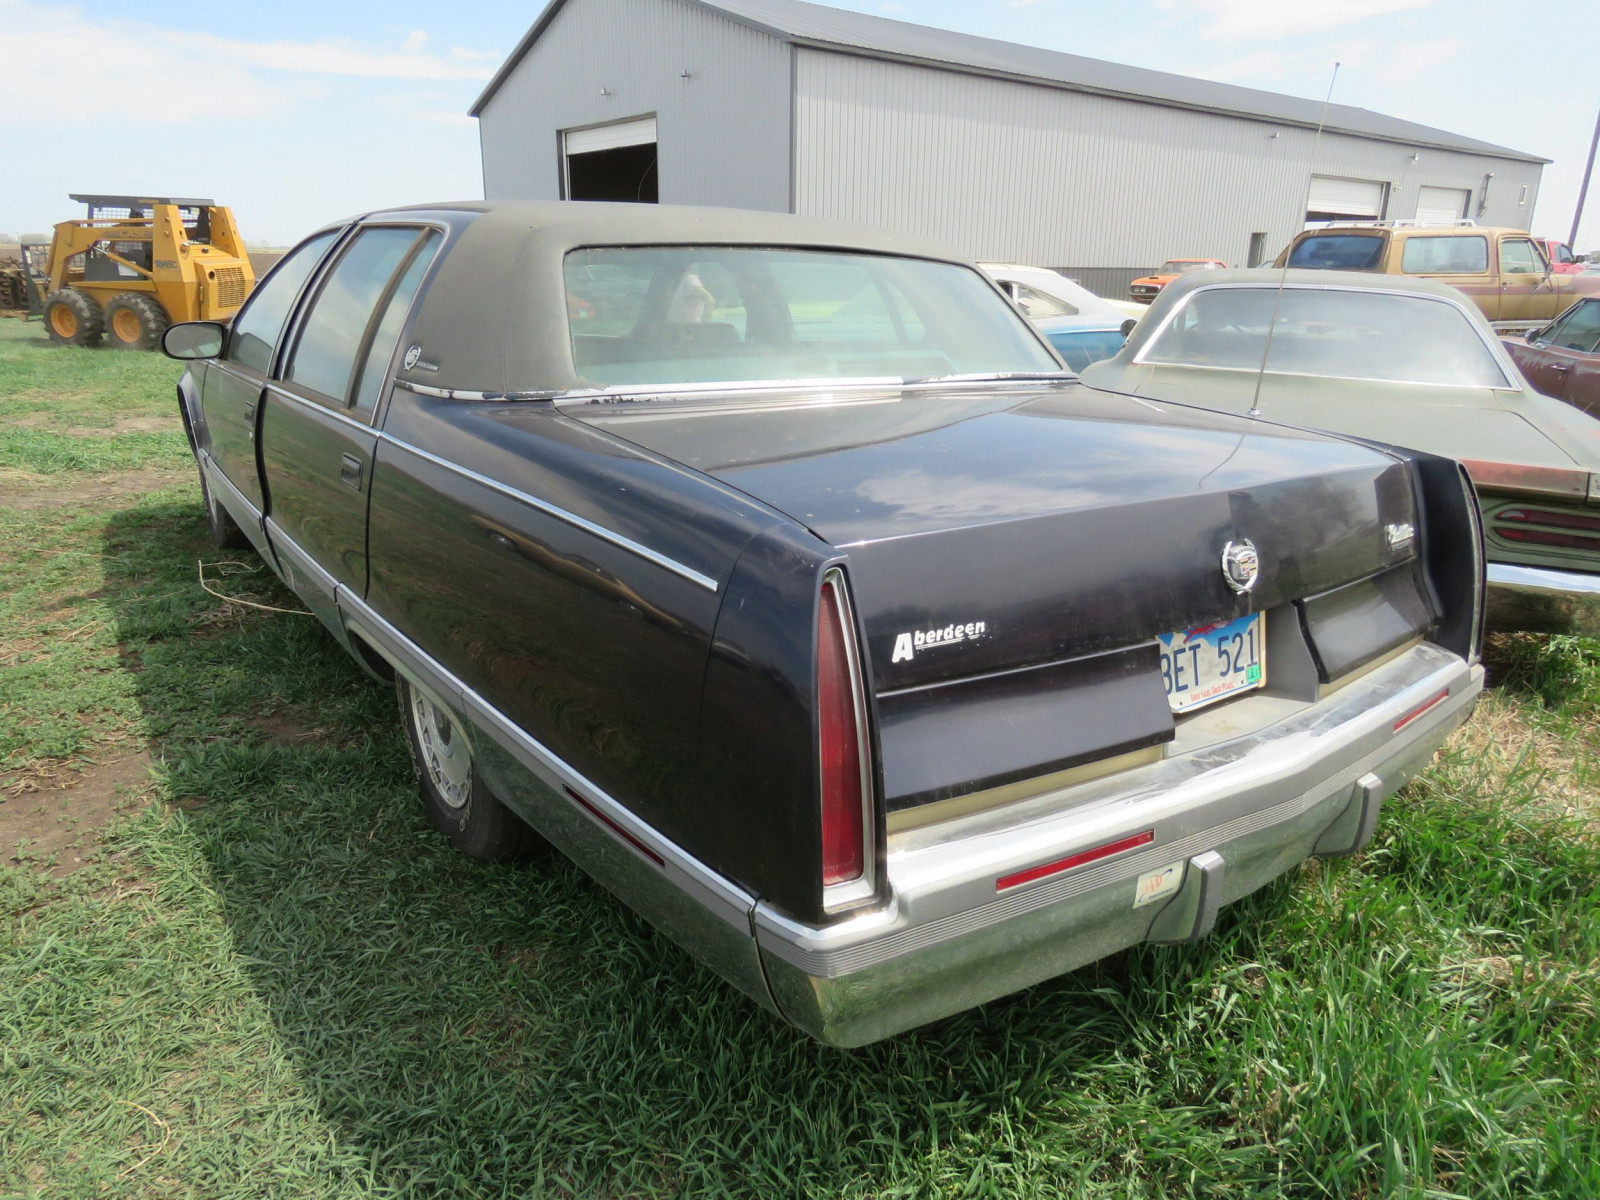 1996 Cadillac Fleetwood Brougham - Image 4